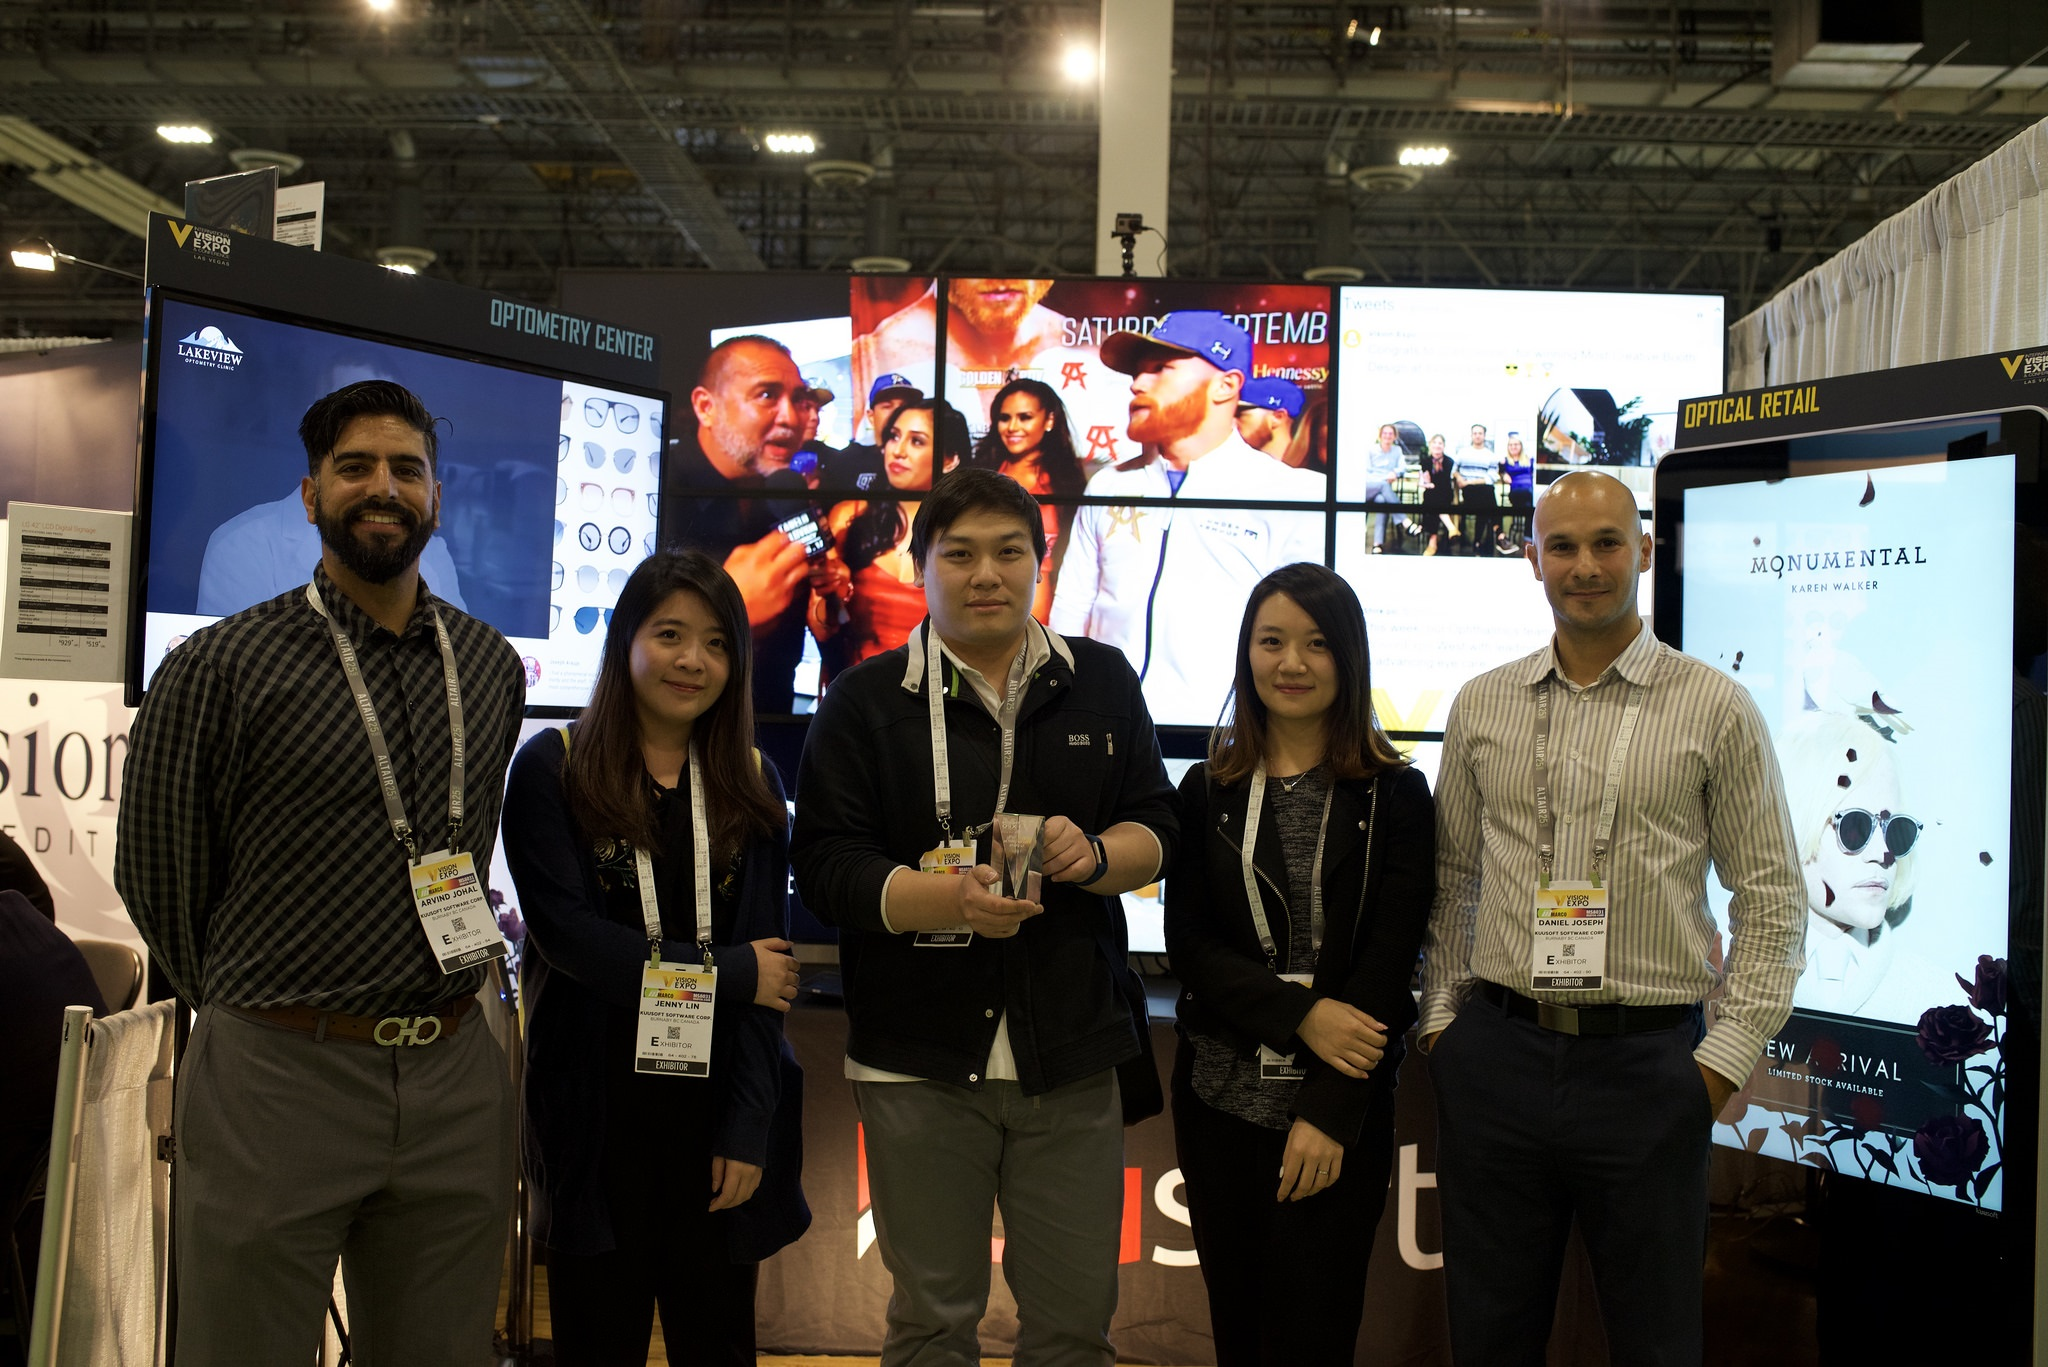 Vision Expo: best exhibitor booth contest winners | Optical